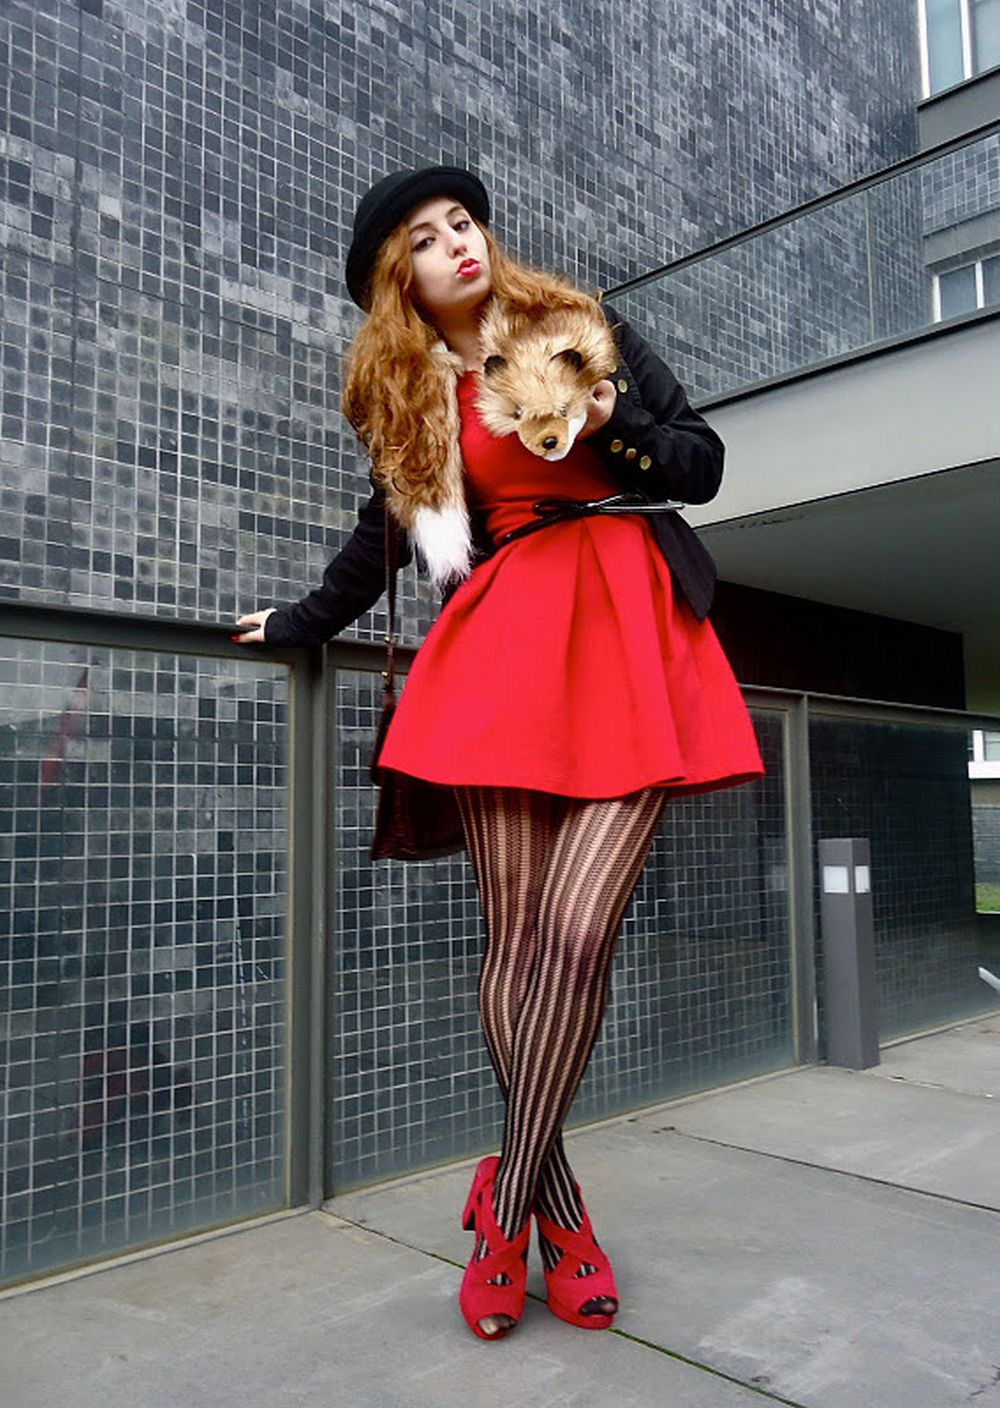 Vertical Patterned Black Lace Pantyhose With Red Heels And Dress Hat Red And Black Outfits Fashion Lace Tights [ 1408 x 1000 Pixel ]